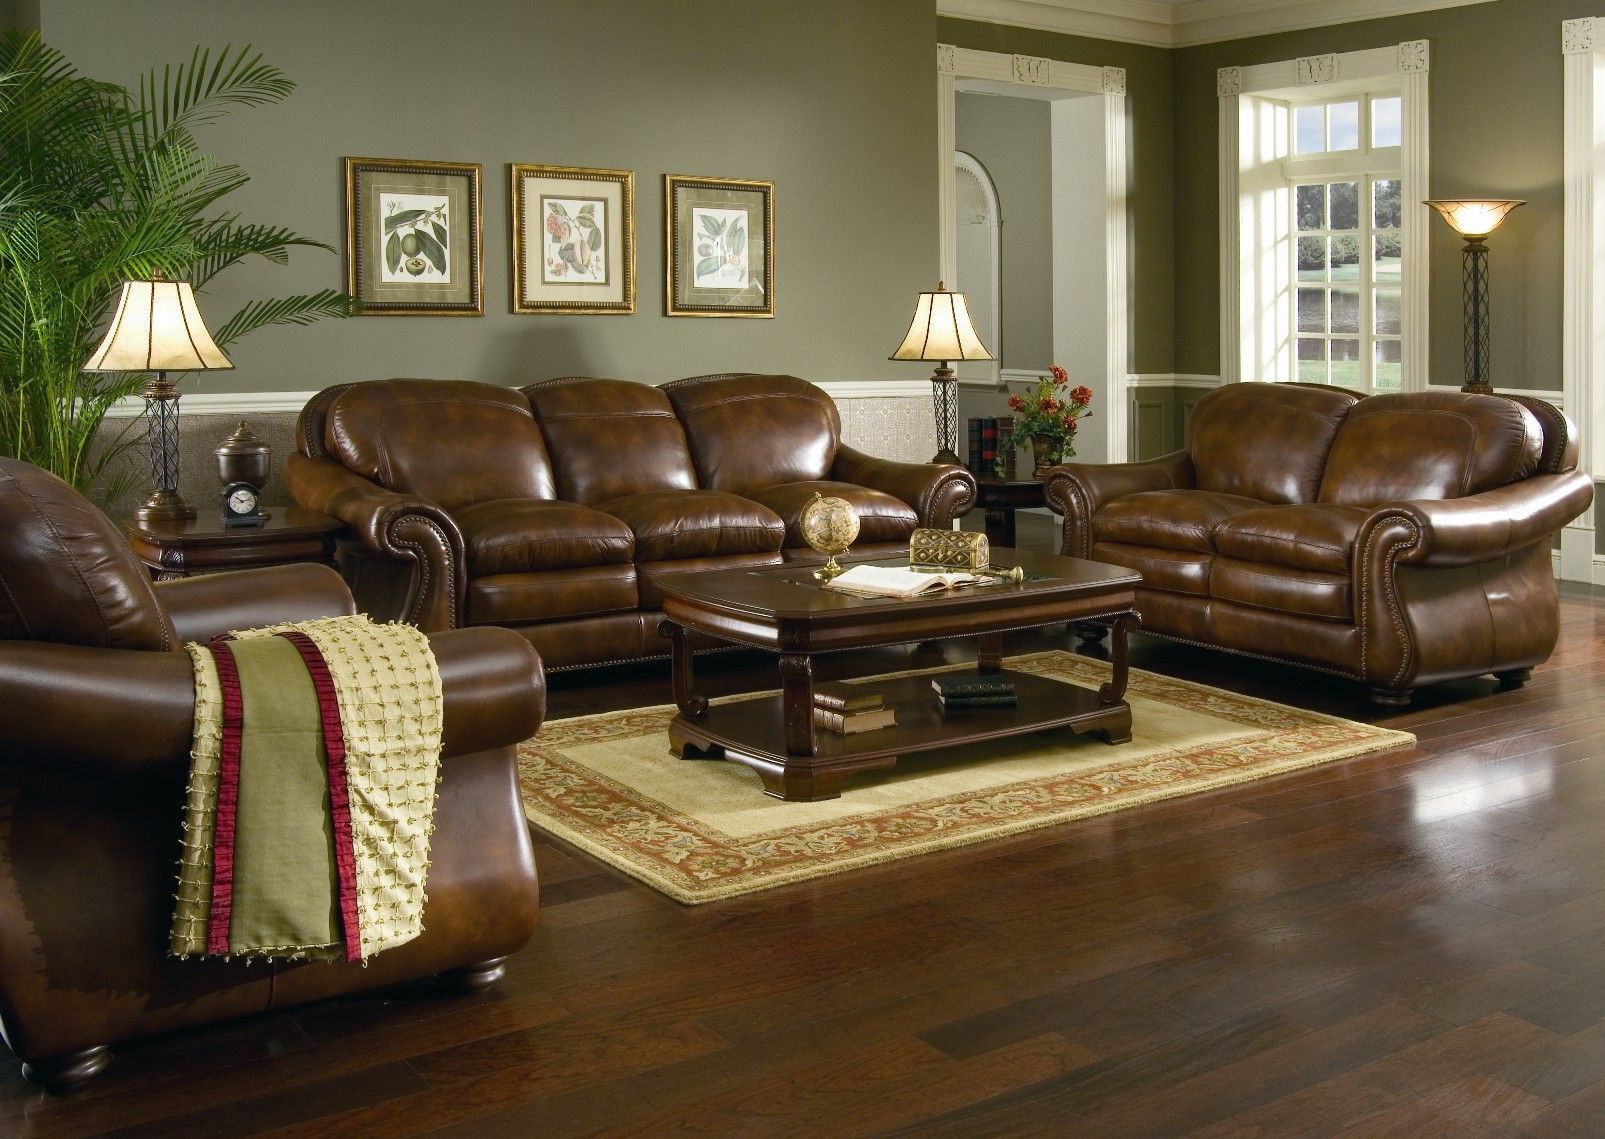 Living Room Decorating Ideas With Brown Leather Sofa